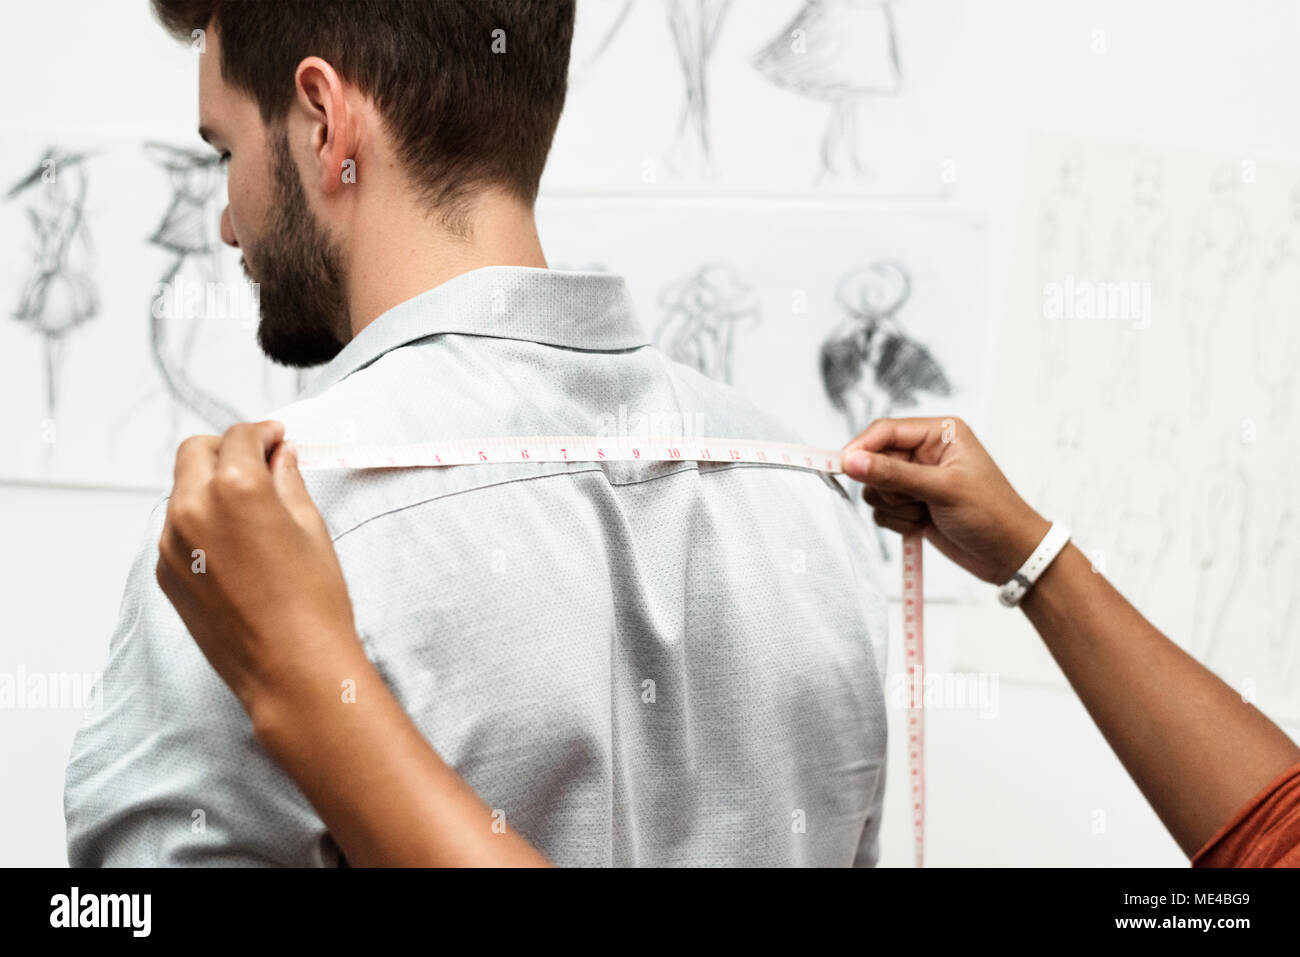 Tailor measuring the body size - Stock Image